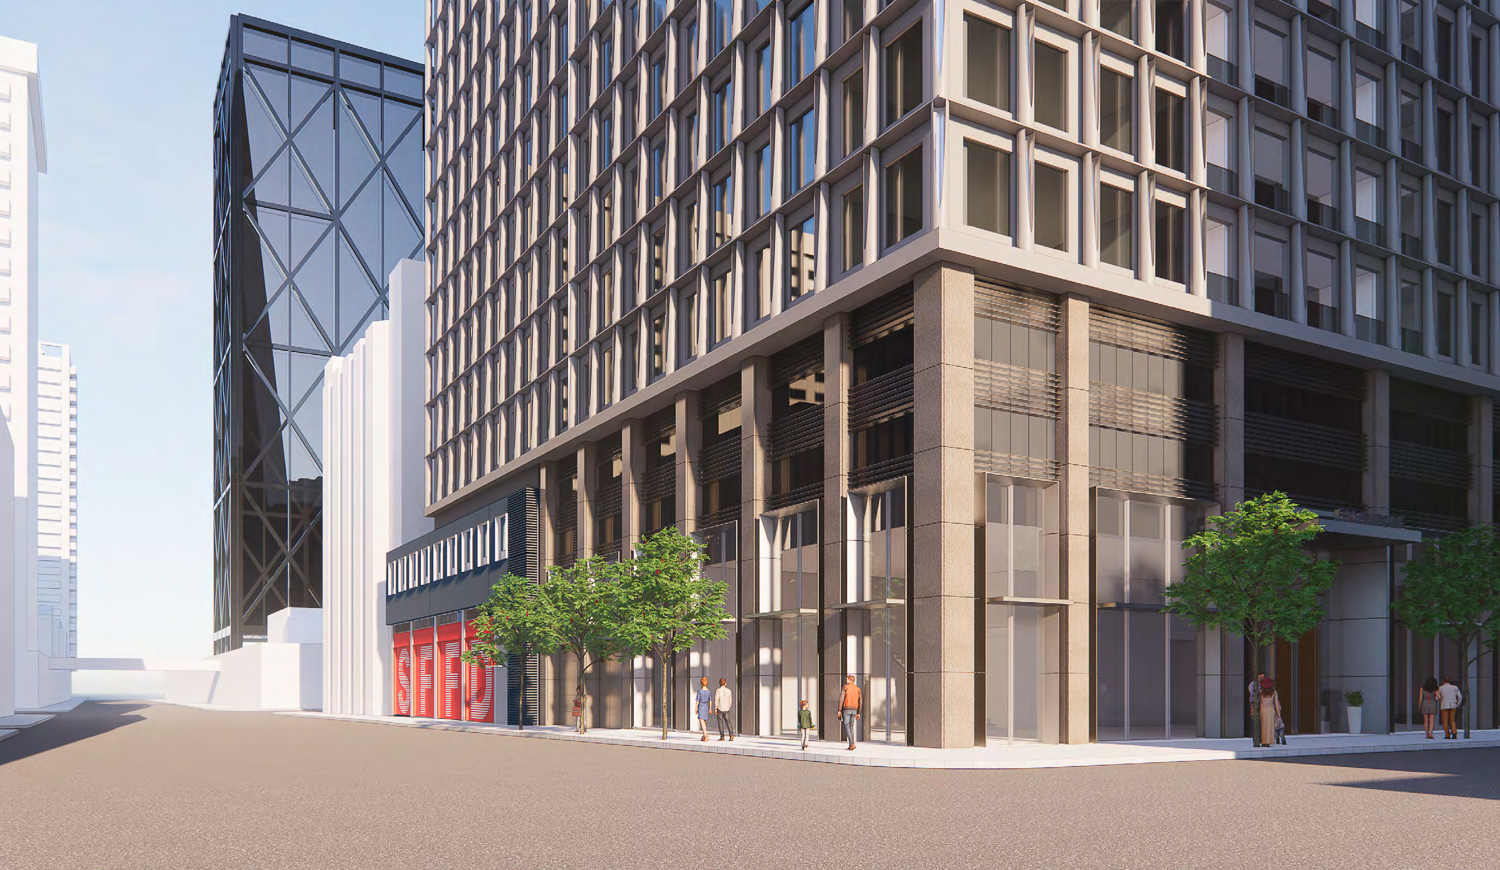 530 Sansome Street residential project variant podium view, rendering by SOM